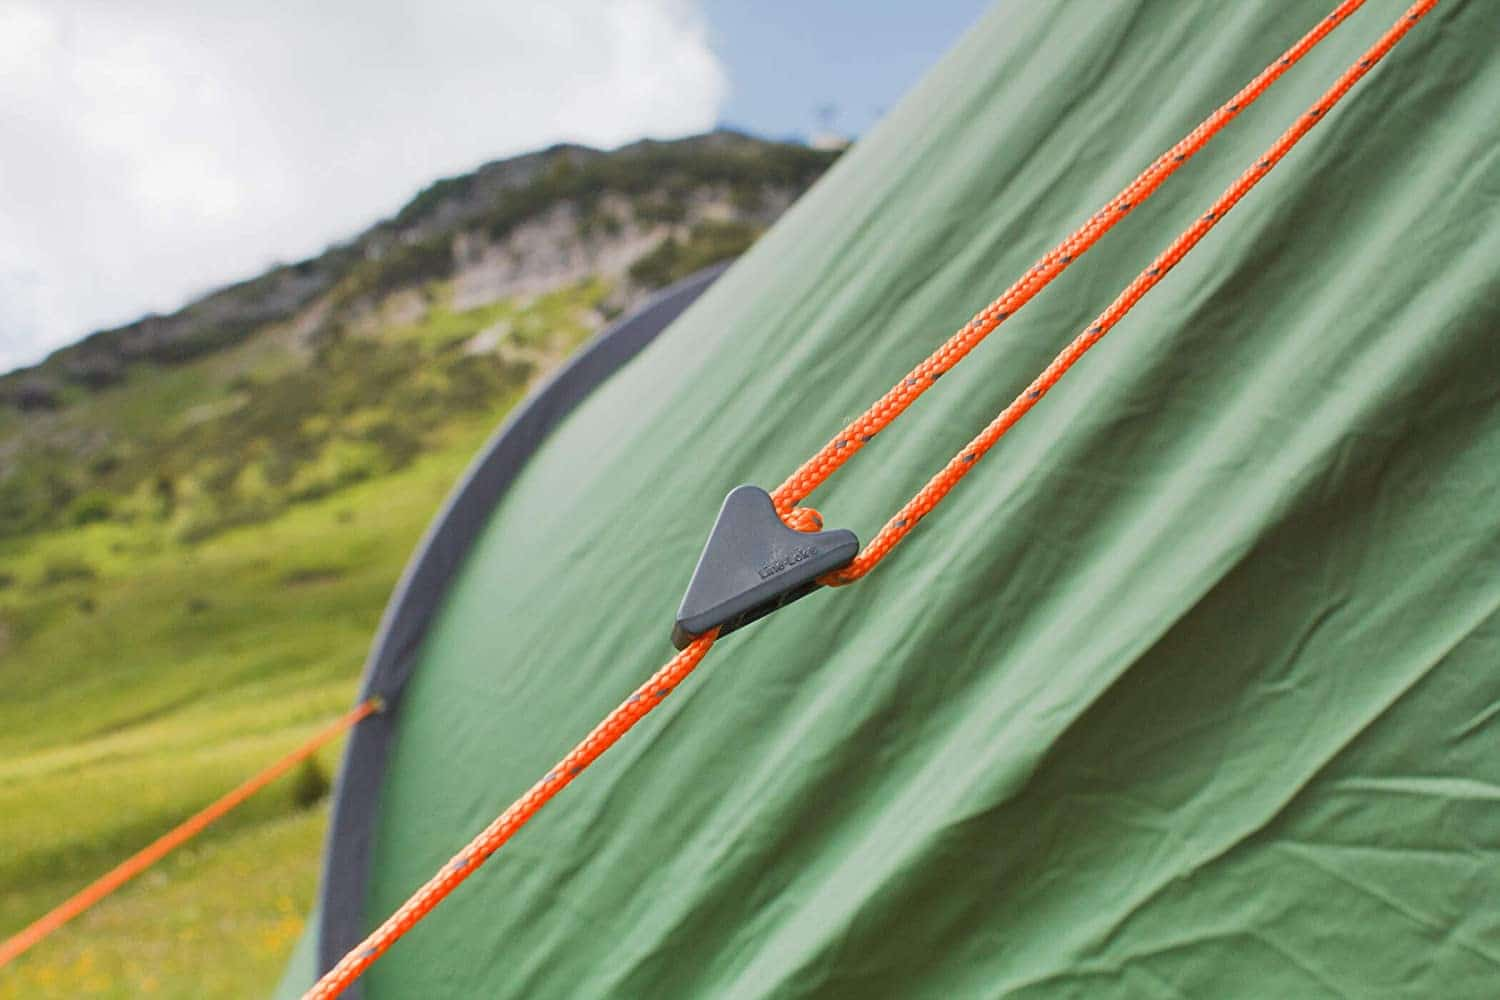 Vango Banshee 300 Backpacking Tent